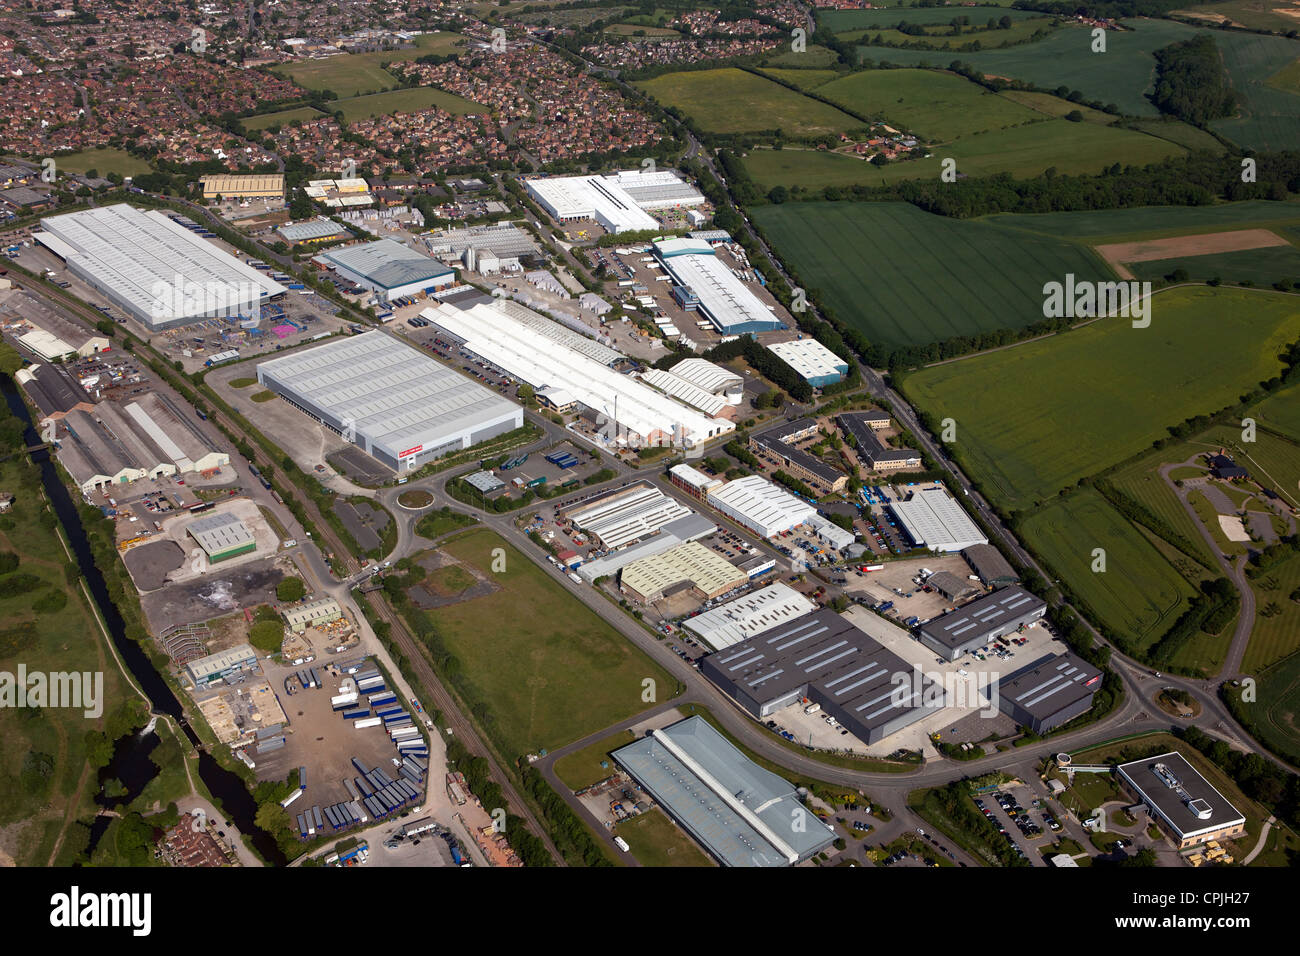 aerial view of Thatcham Industrial Estate, Berkshire - Stock Image